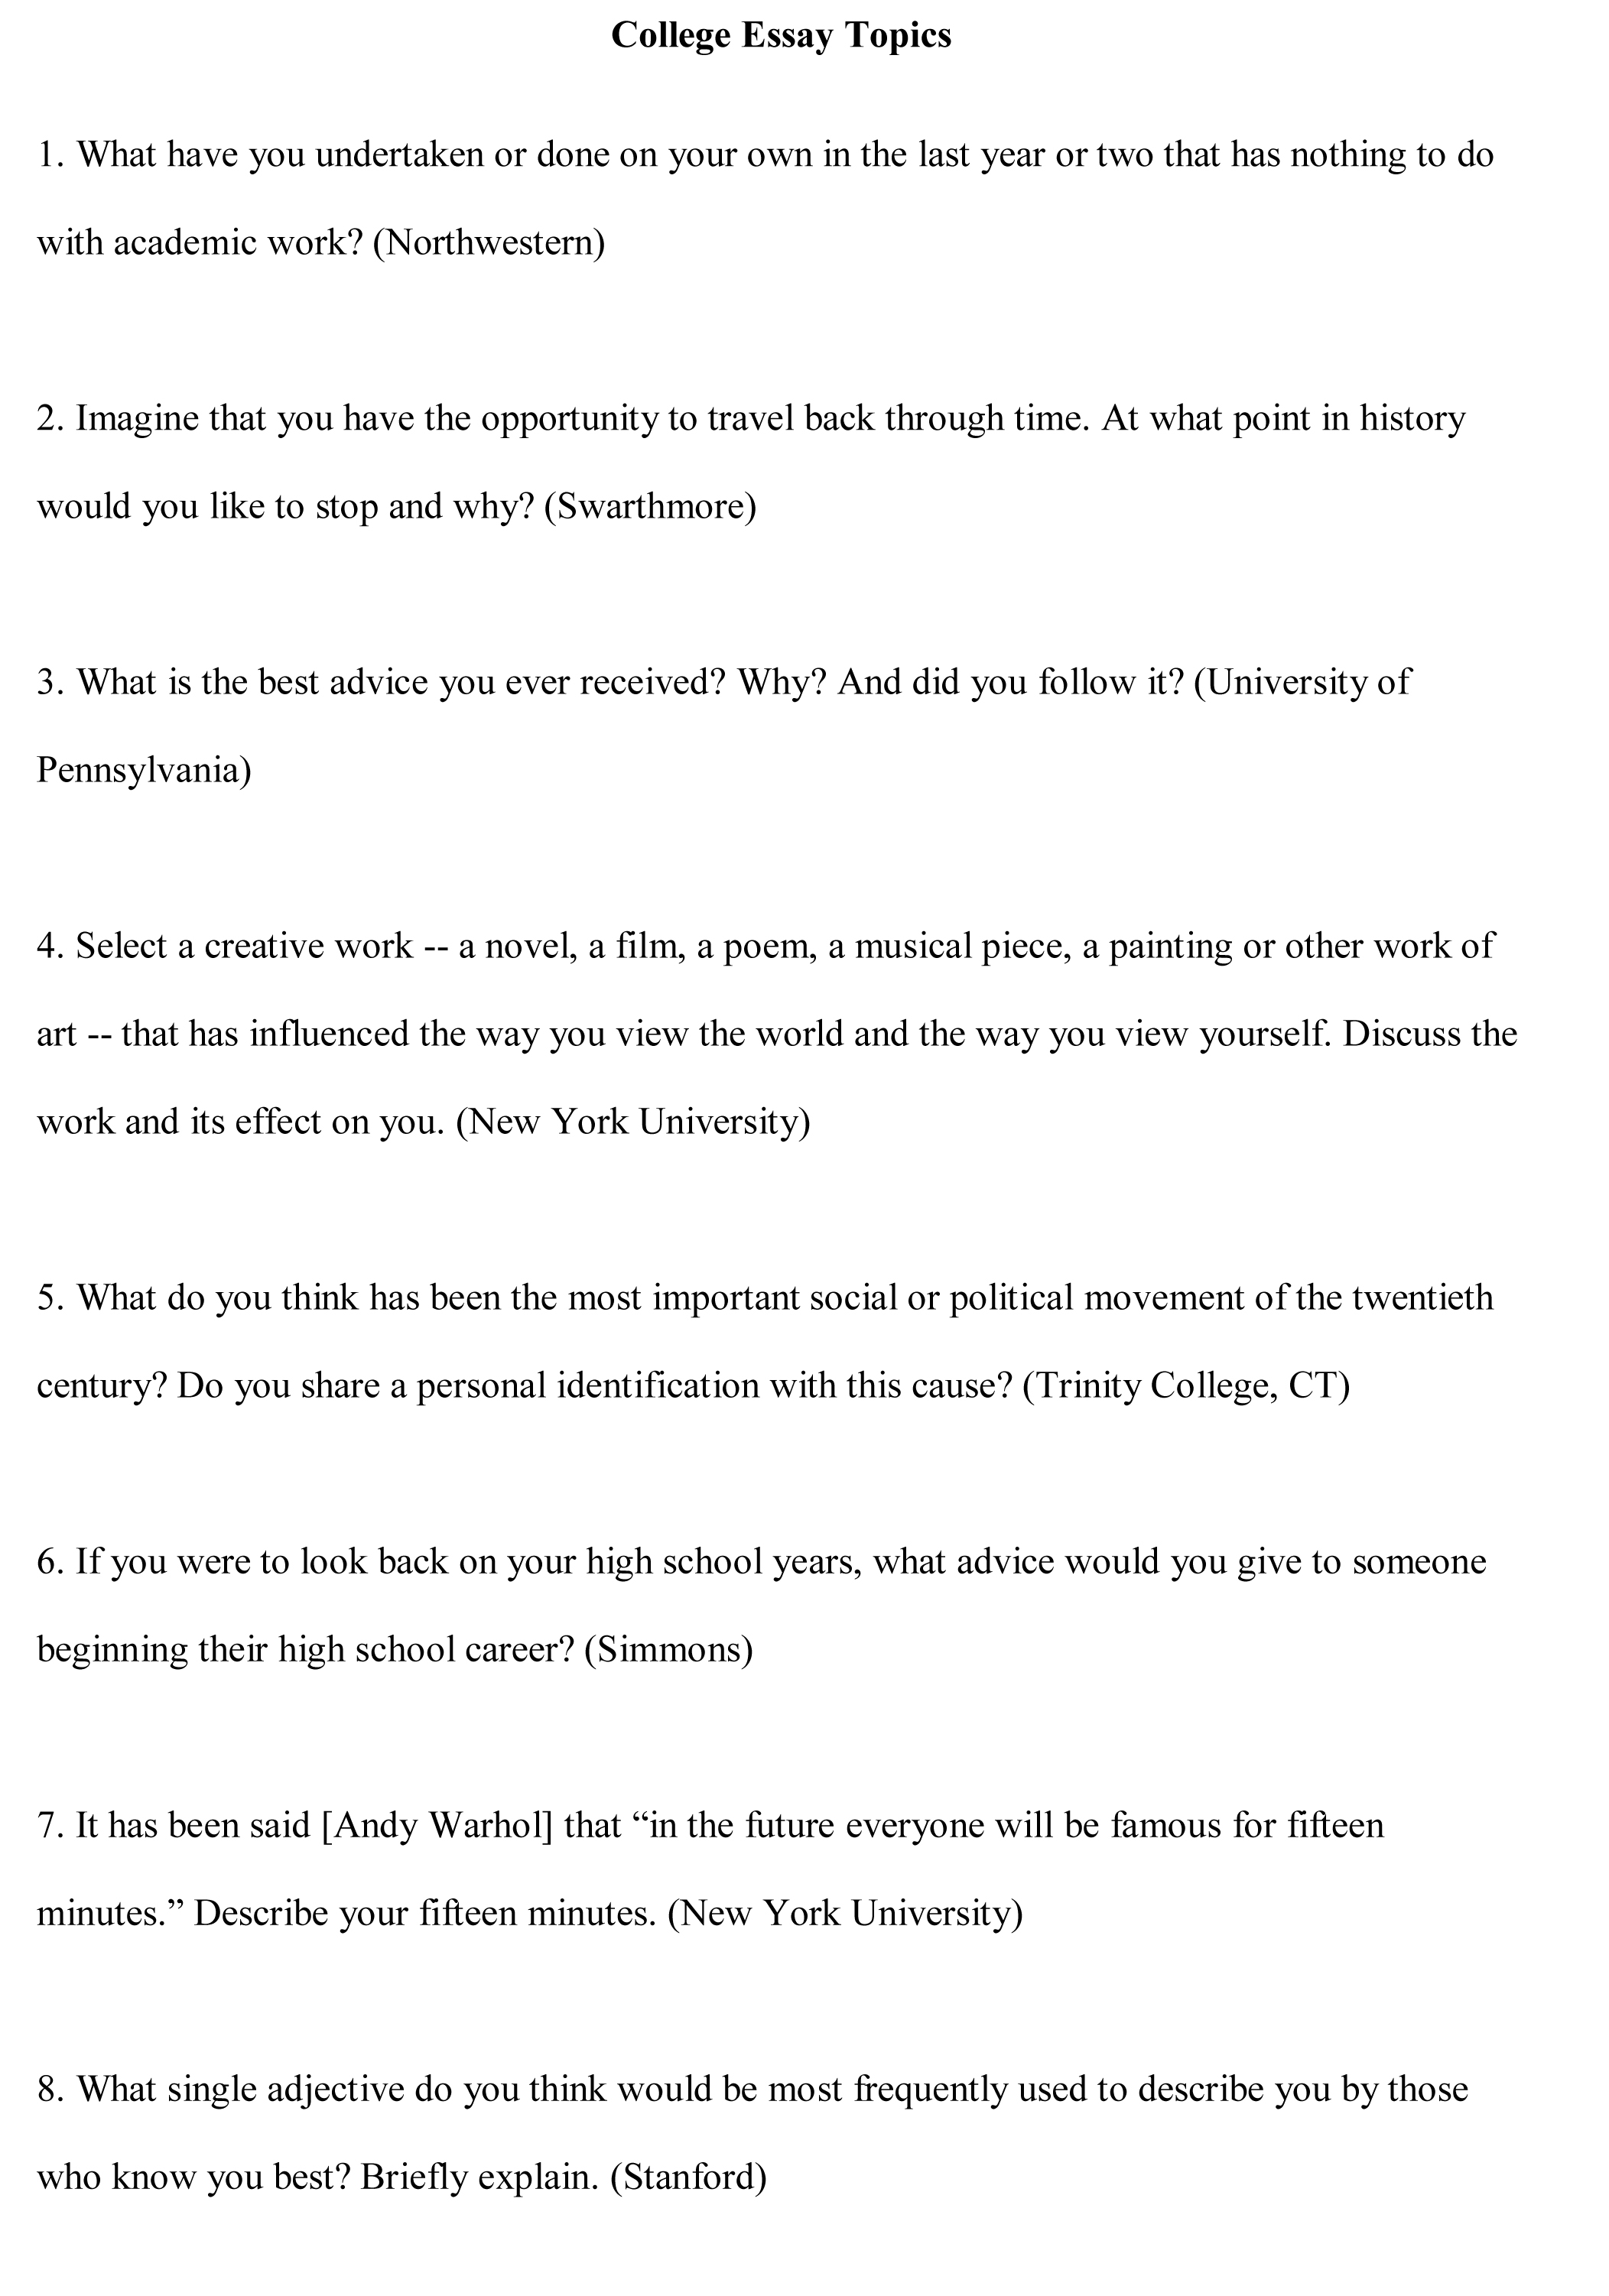 006 How To Essay Ideas Example College Topics Free Exceptional Easy Generate Funny Full